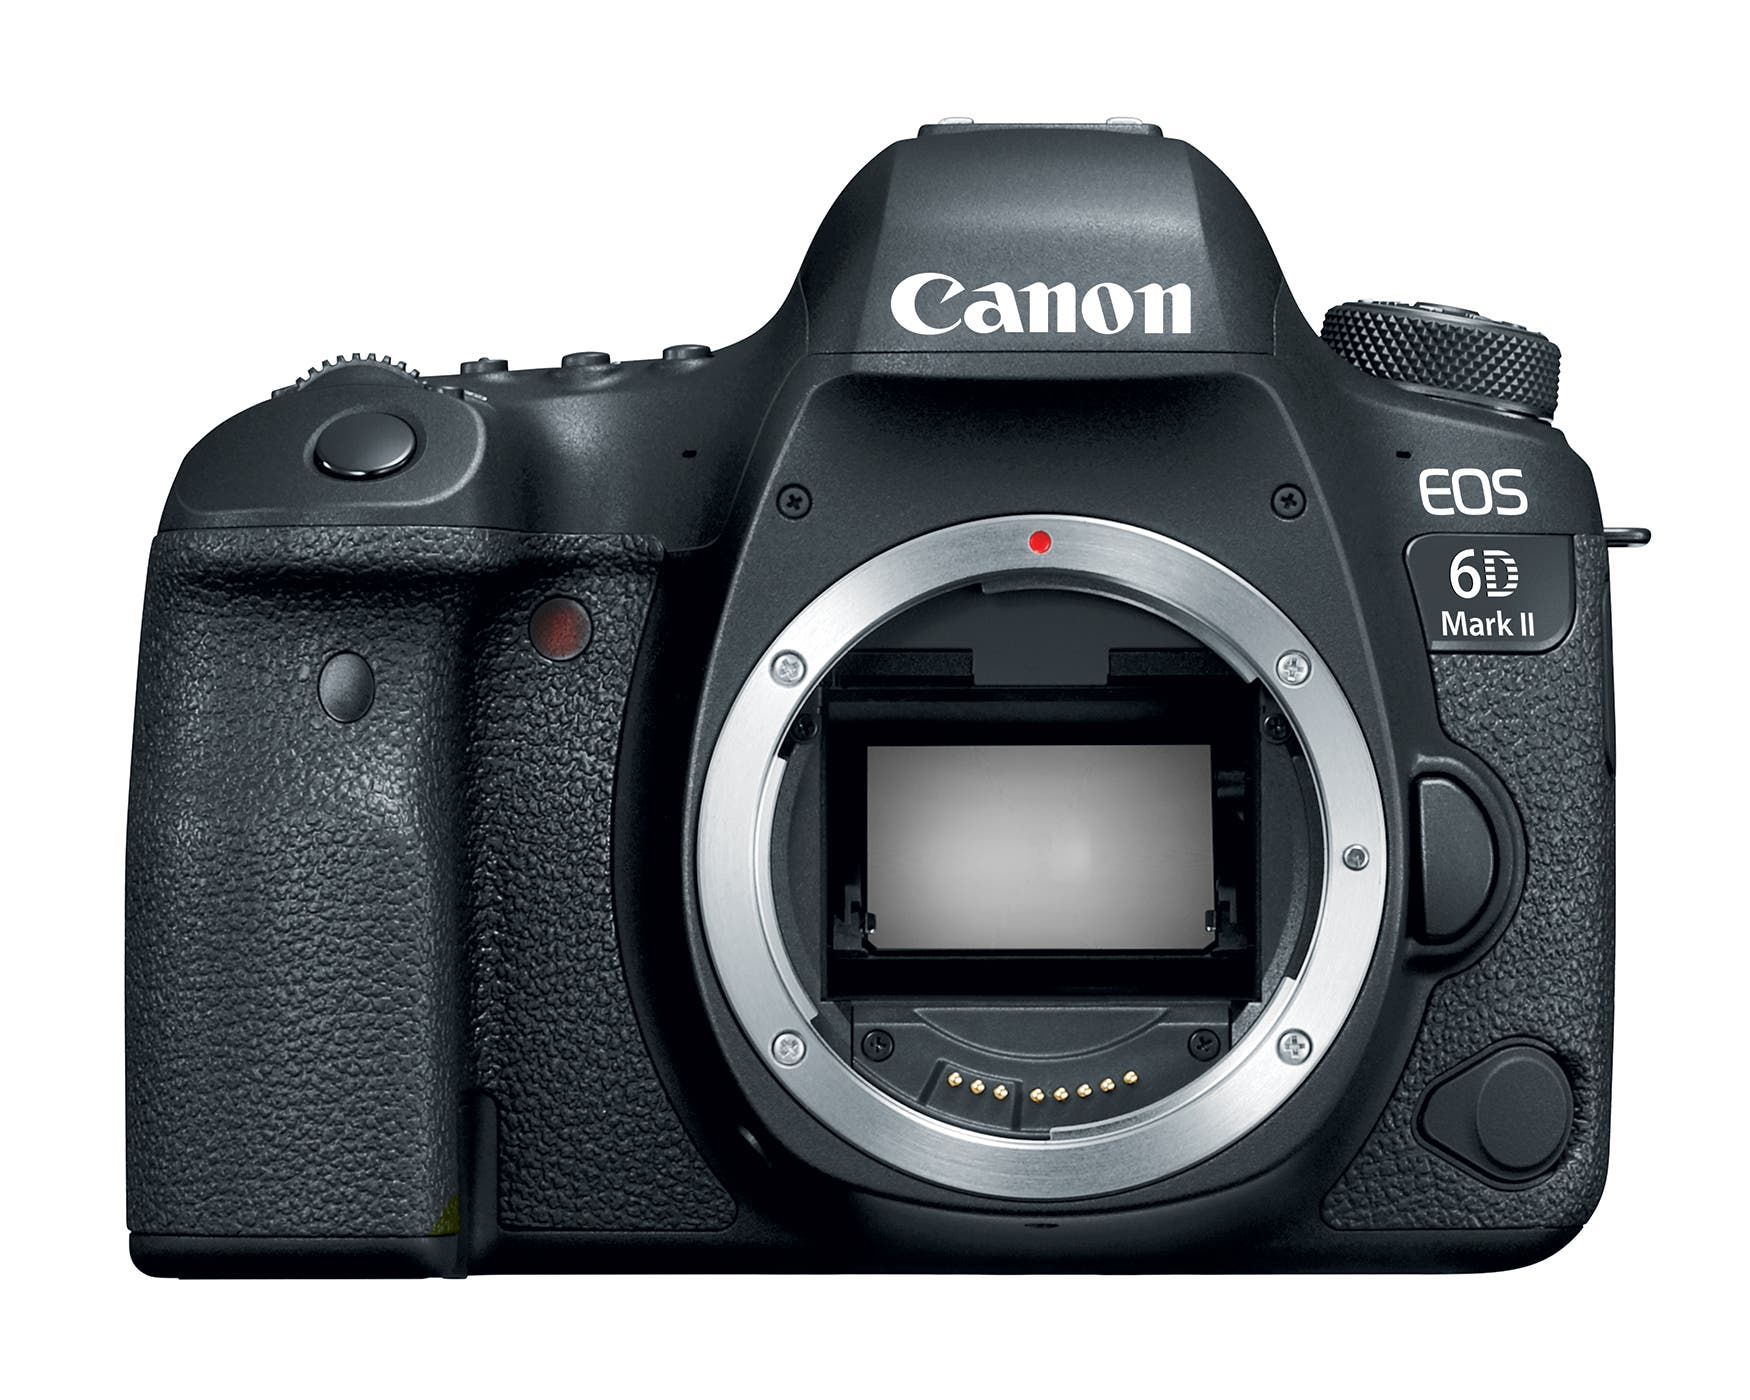 The Canon 6D Mk II Sports a Vari-Angle LCD Screen With No 4K Video